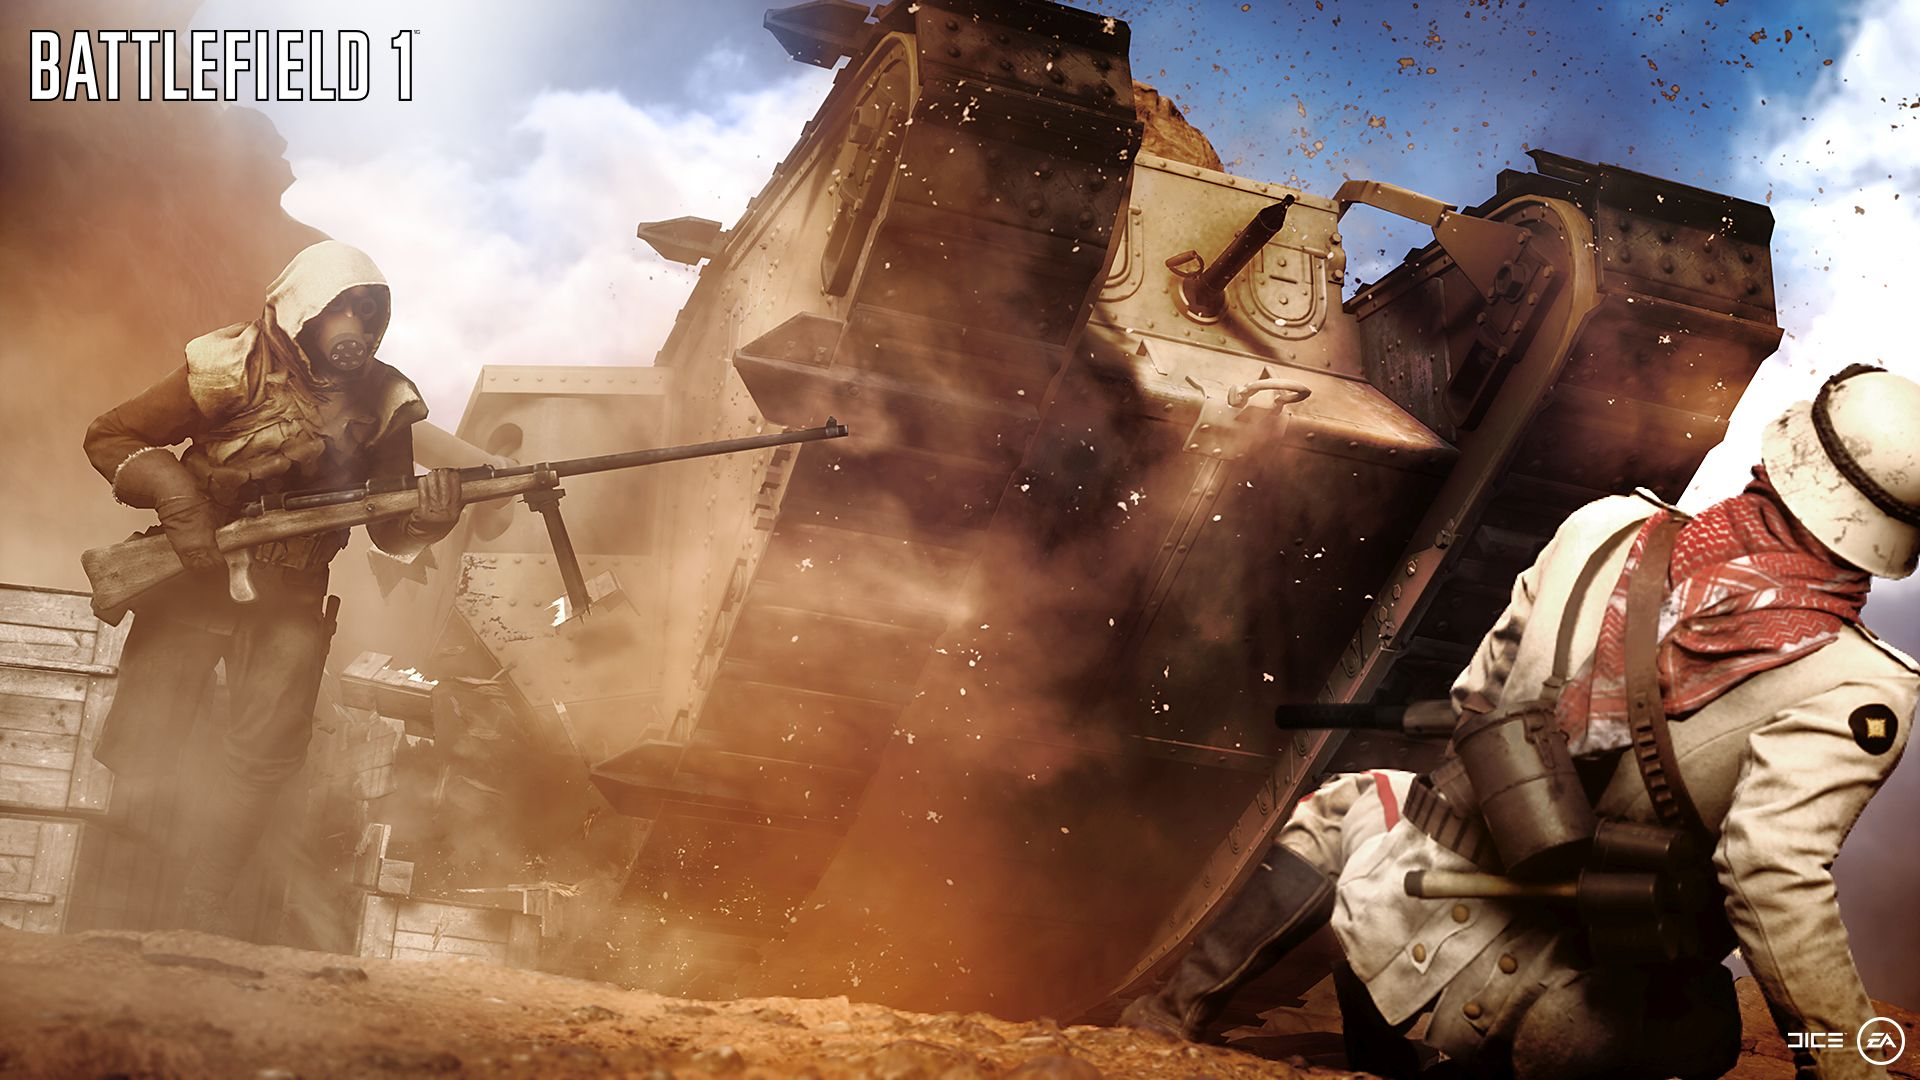 Battlefield 1 Drops to 160x90 Resolution on PlayStation 4